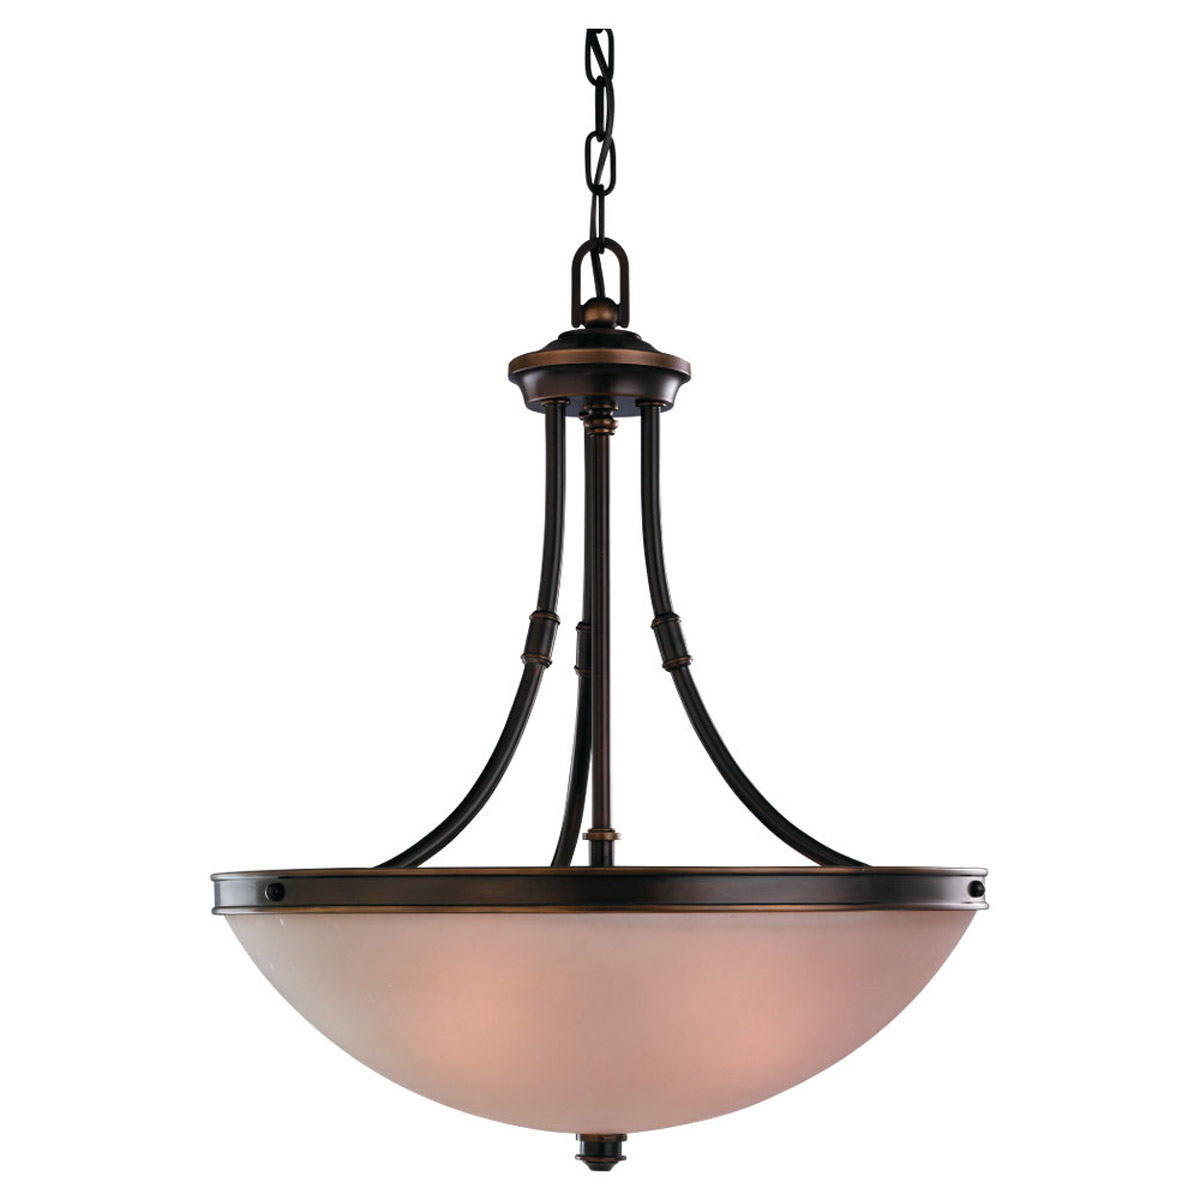 Sea Gull Lighting Warwick 3 Light Pendant in Vintage Bronze 65331-825